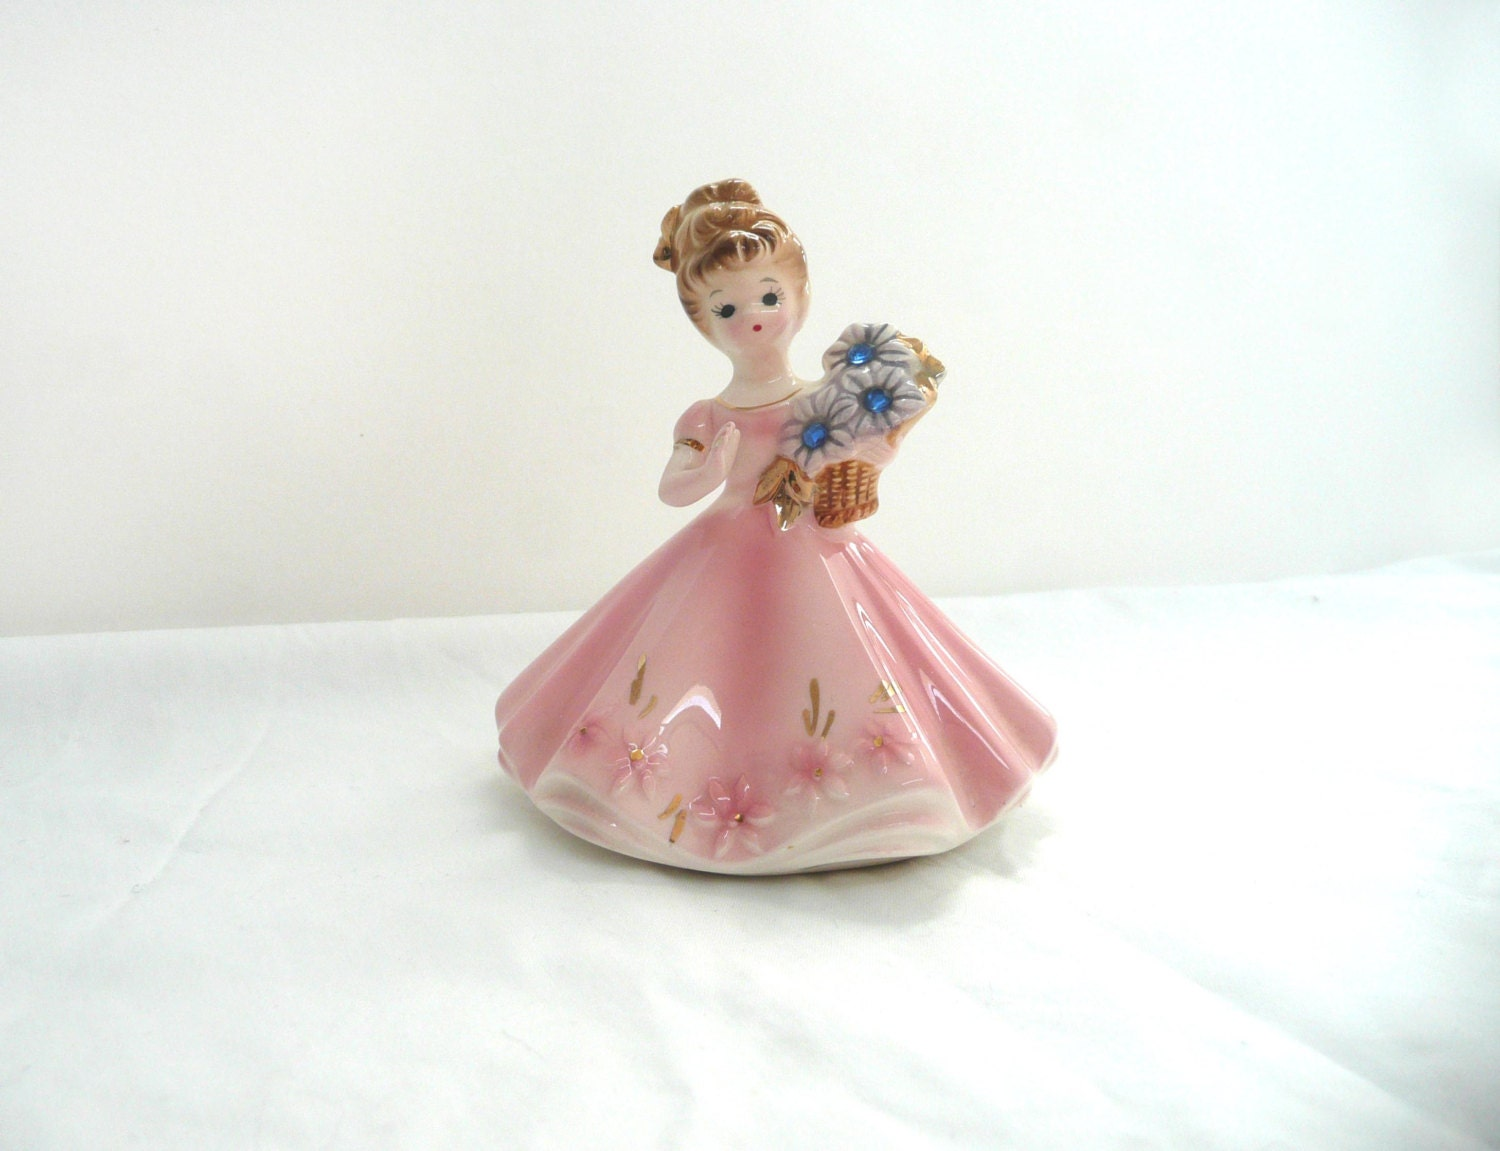 Josef original figurine josef birthday girl by toastandmarmalade1